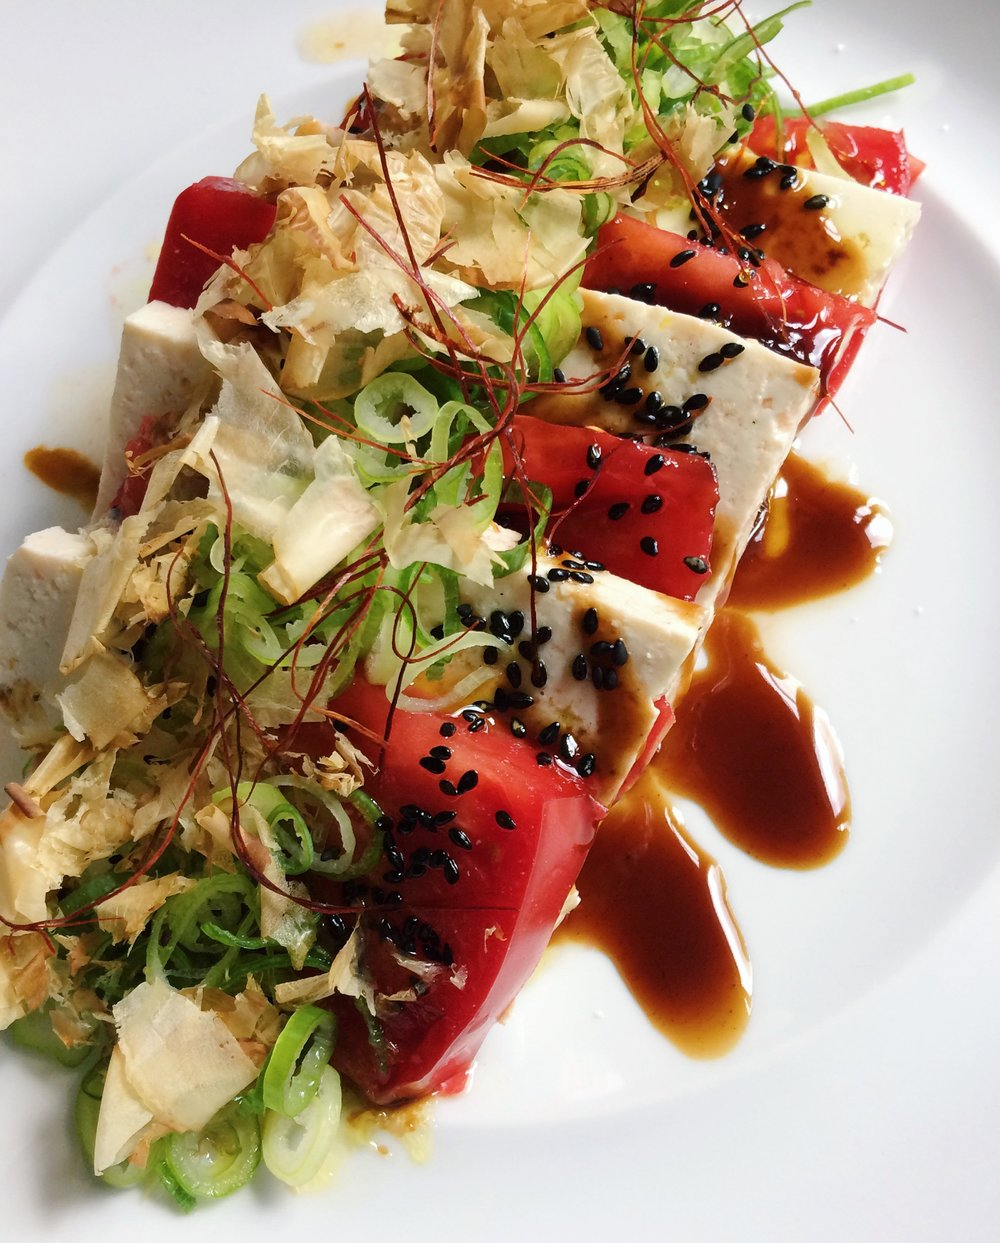 Tofu tomato 'caprese' by Jason Wang (photo by Jason Wang)